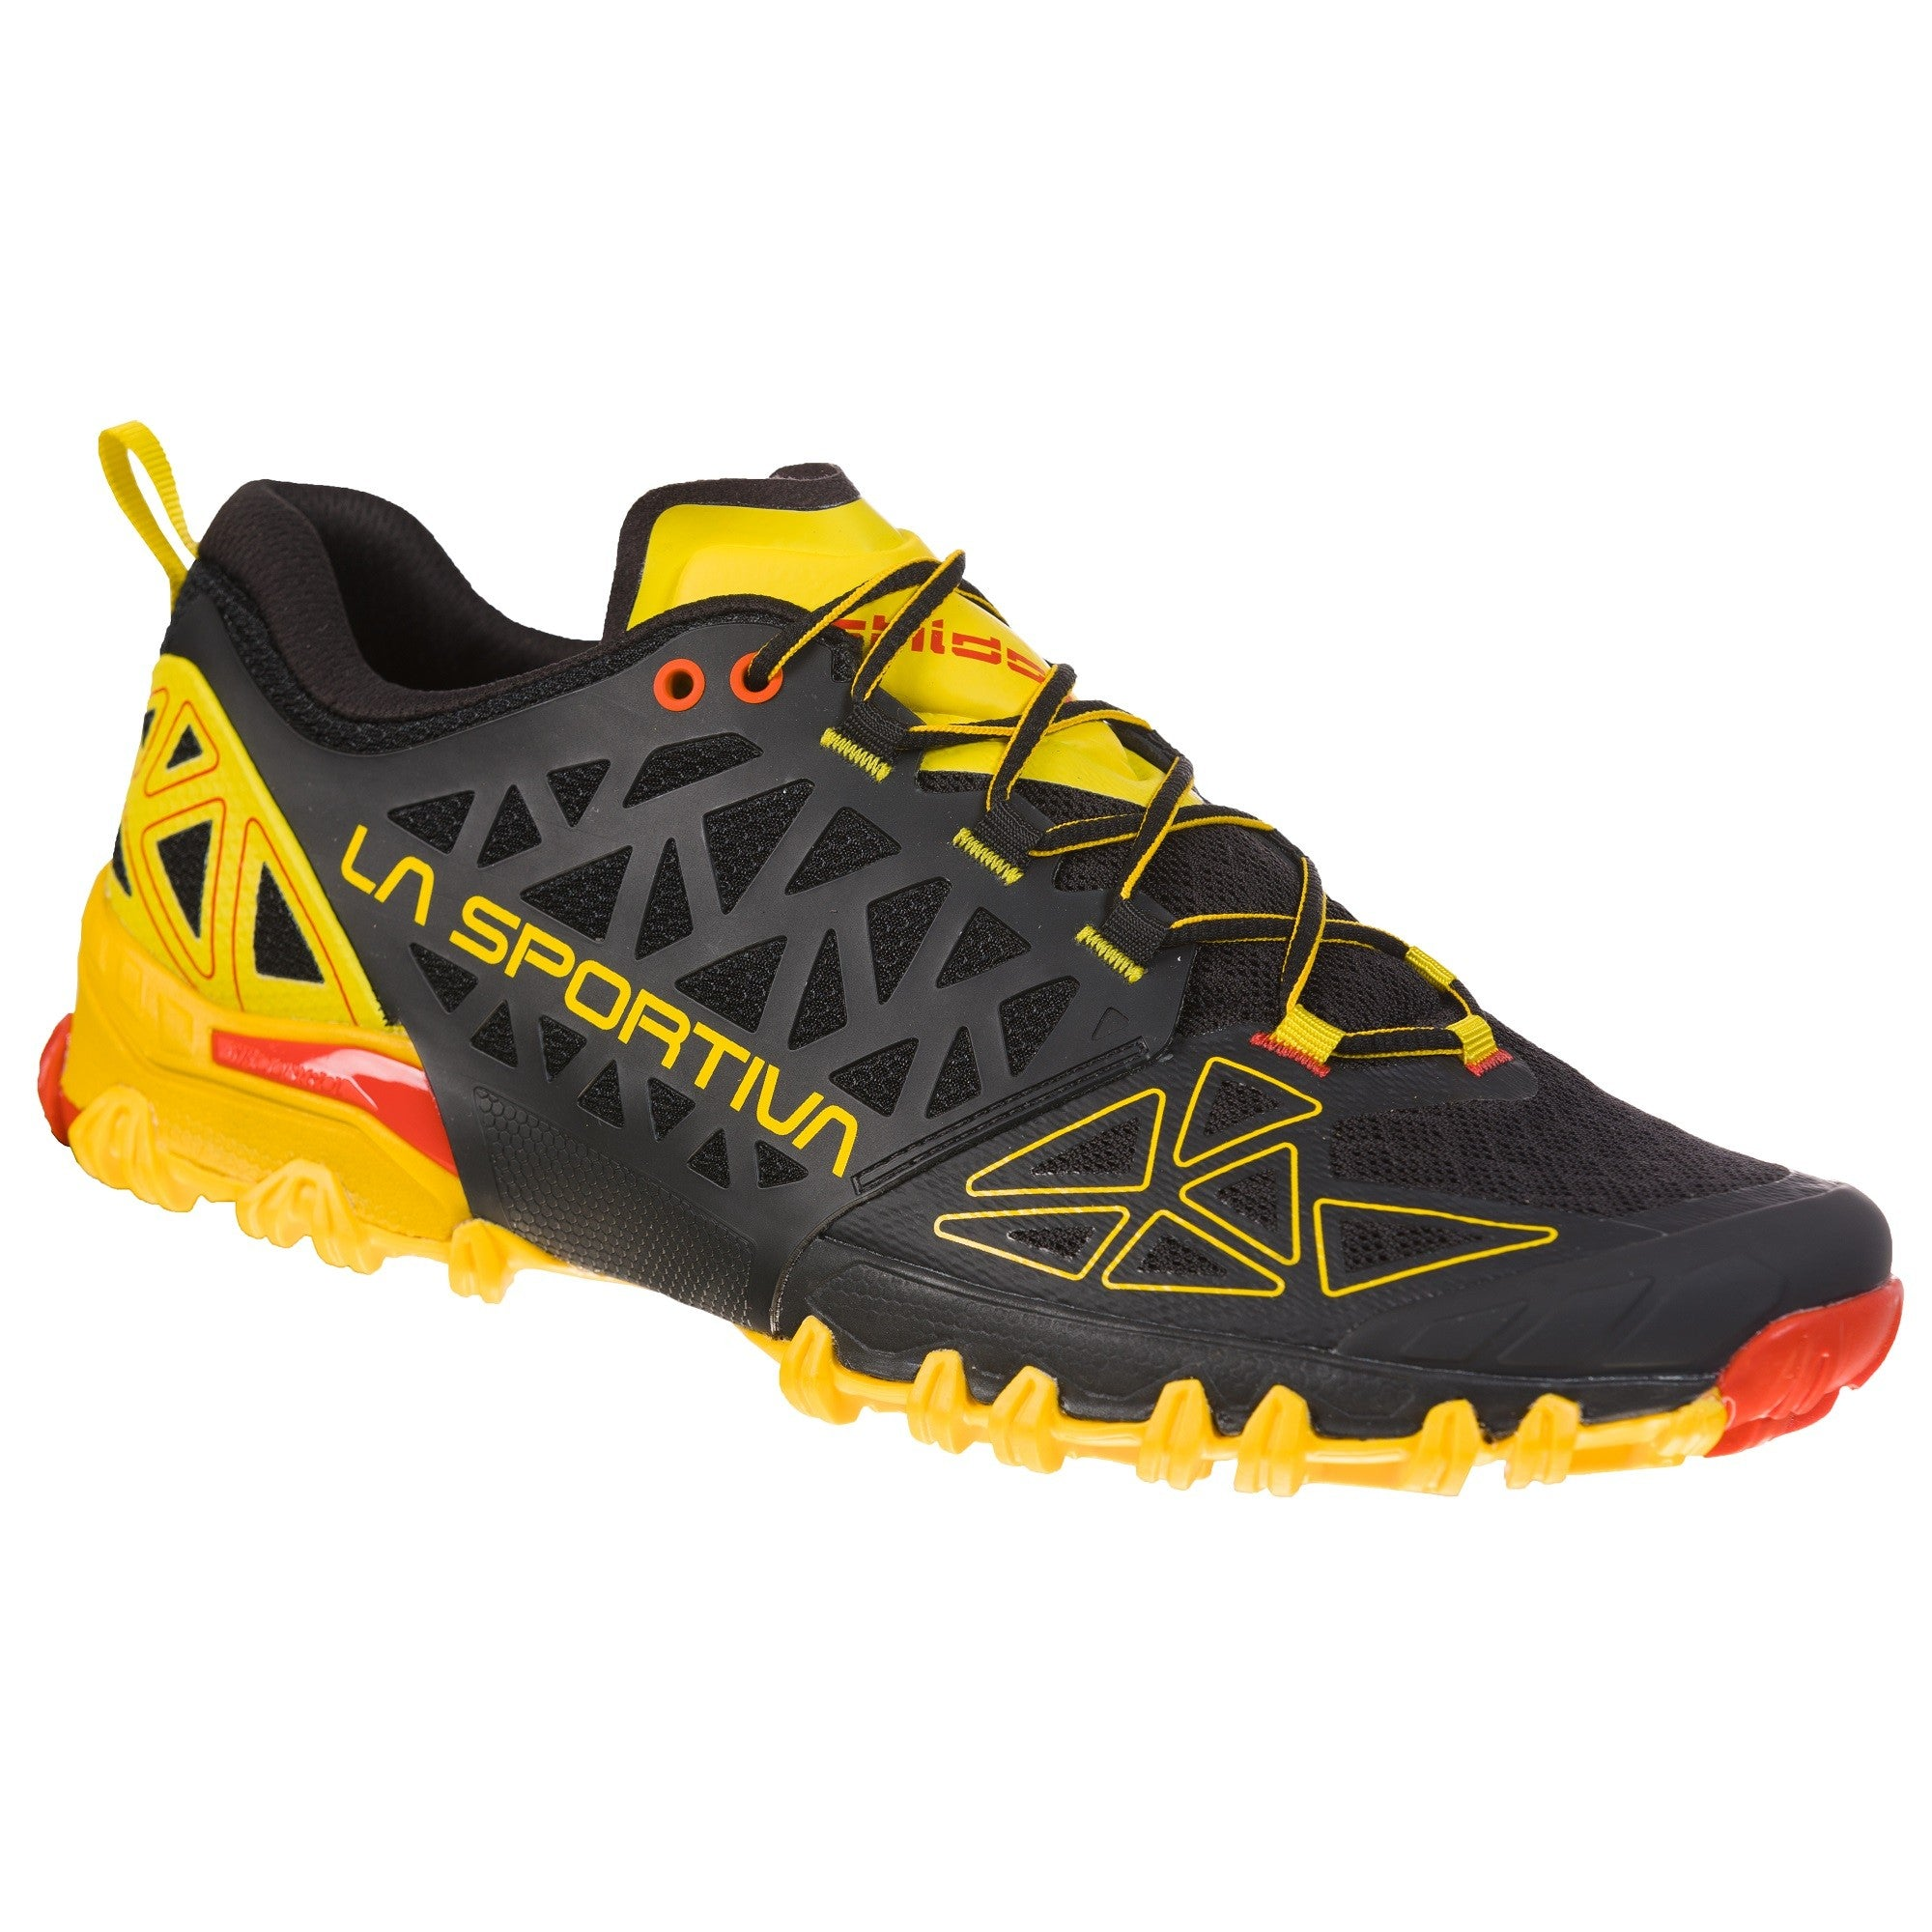 La Sportiva Bushido II trail running shoe, outer side view in Black/Yellow/red colours